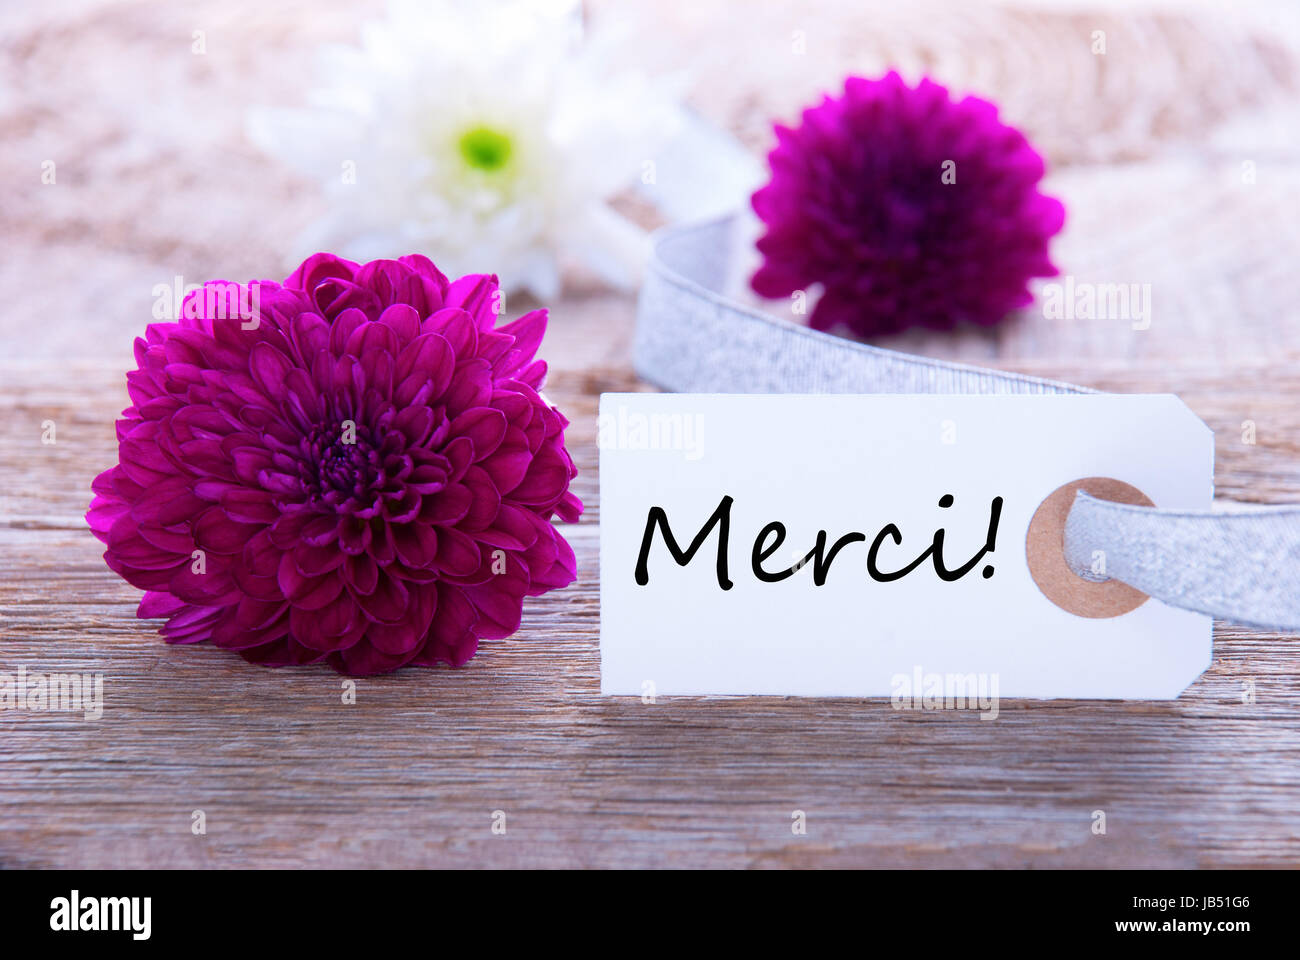 Merci Card With Flowers Stockfotos  Merci Card With